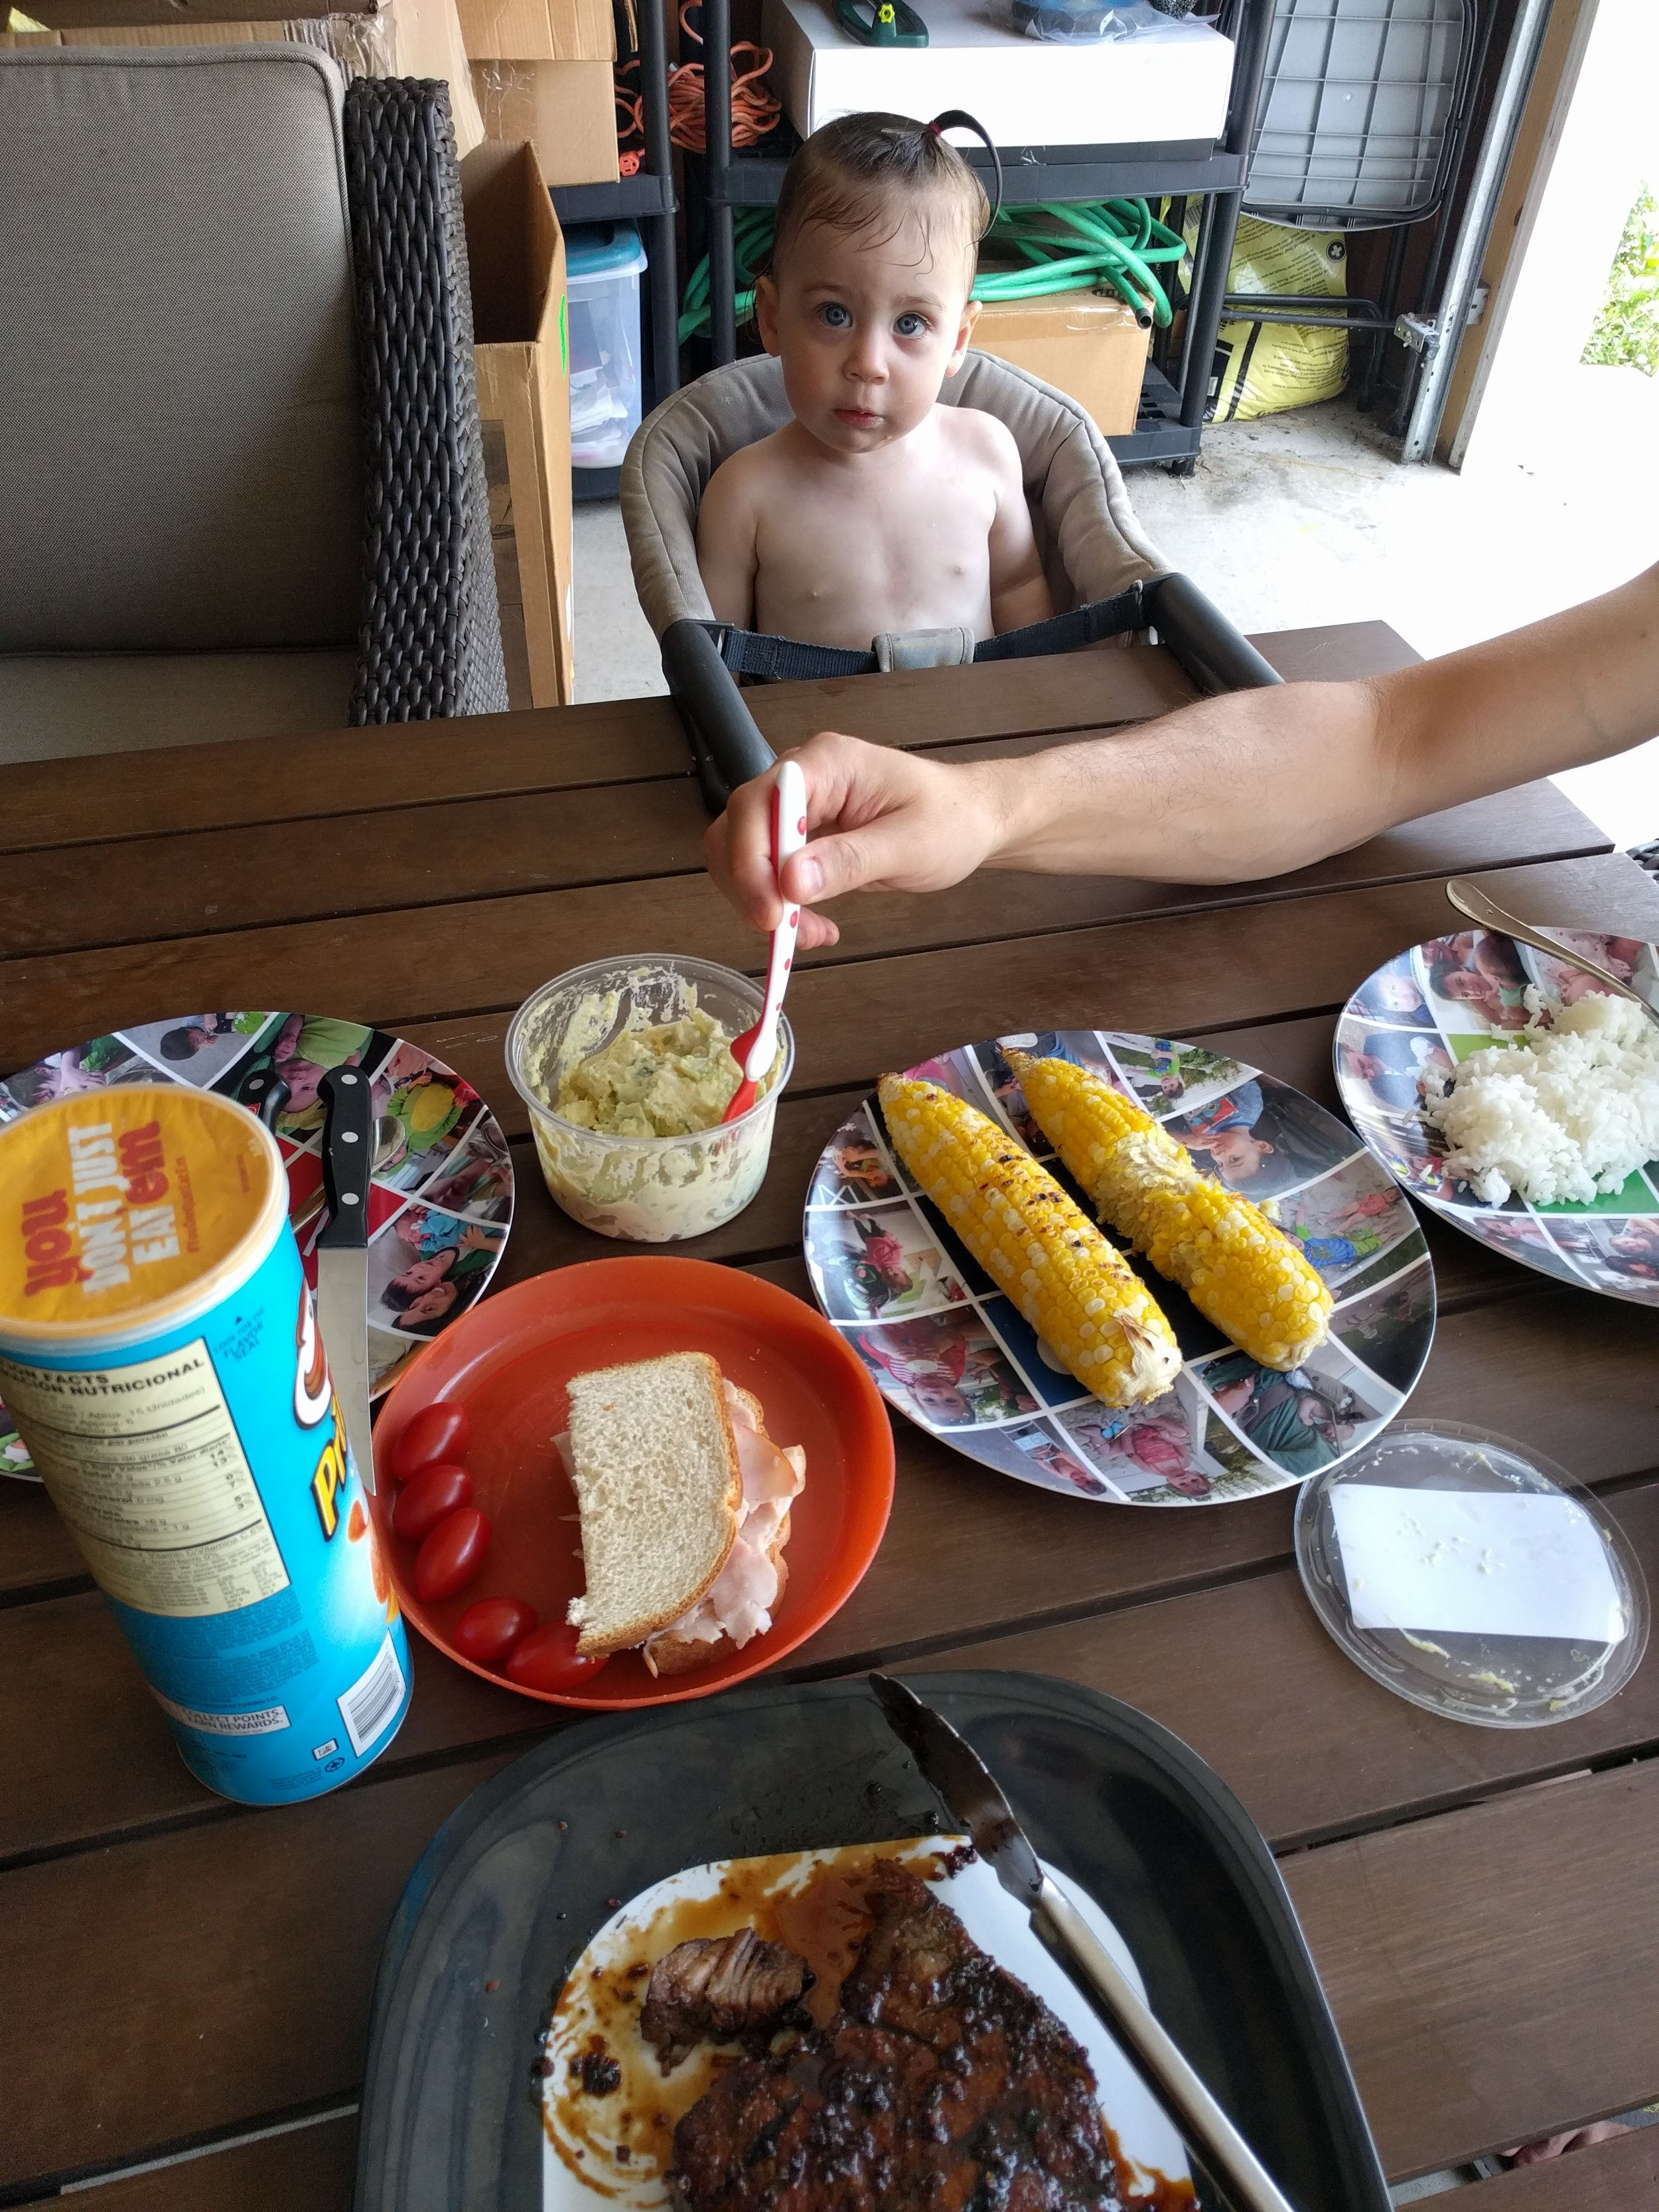 We put our patio umbrella over the kiddie pool so we ate lunch in the shade of the garage.Happy to report that Emmett eschewed his ham sandwich for the jerk pork. Fly the W! Home Cooking 1: Toddler Diet 0.